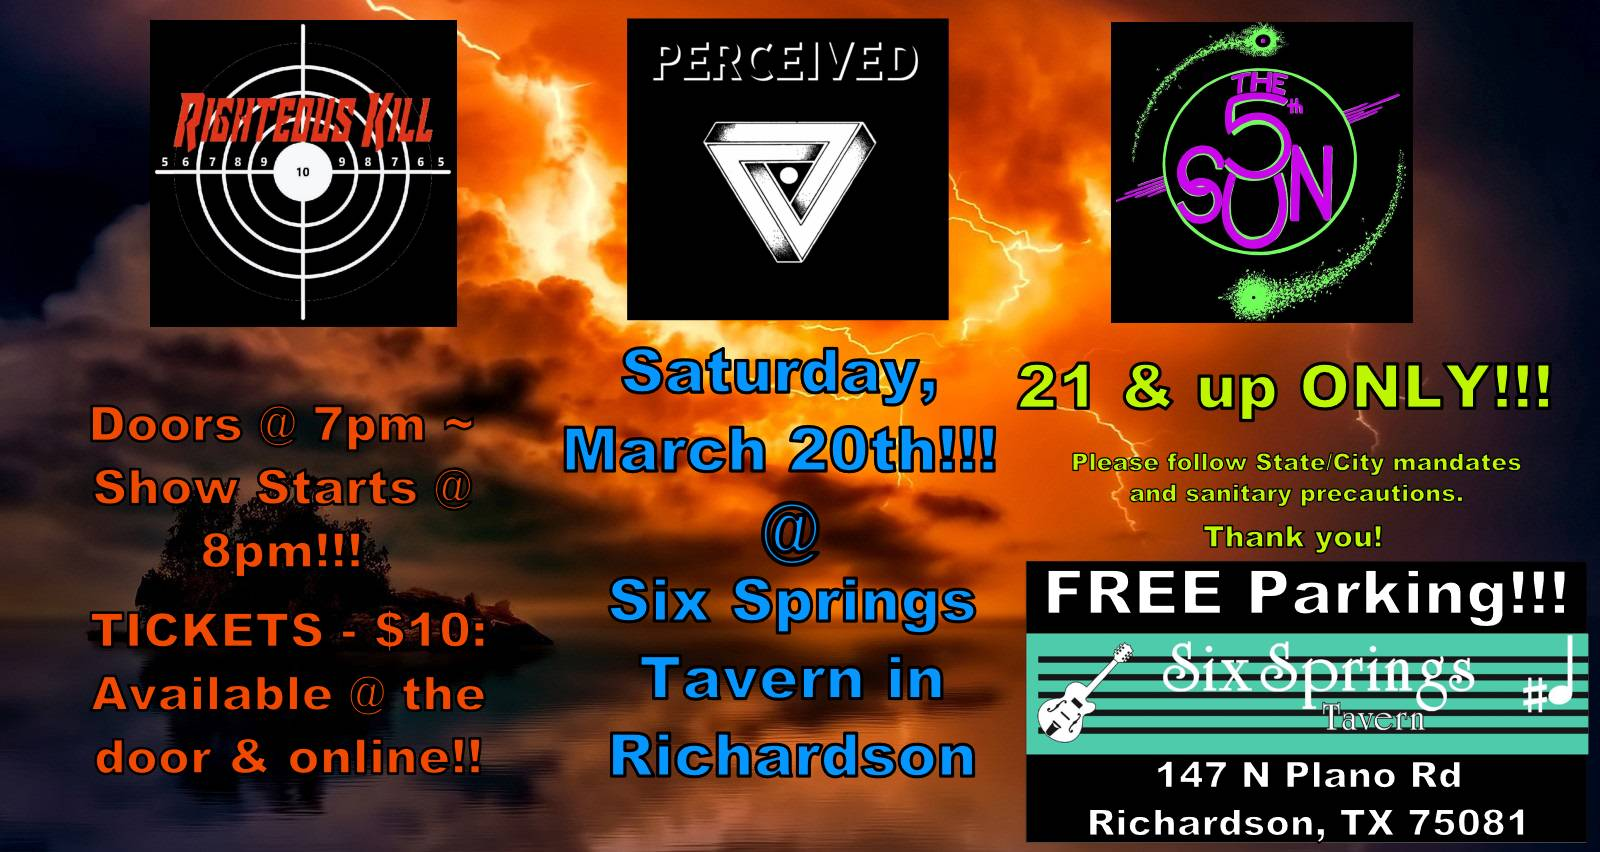 Flyer image for this event